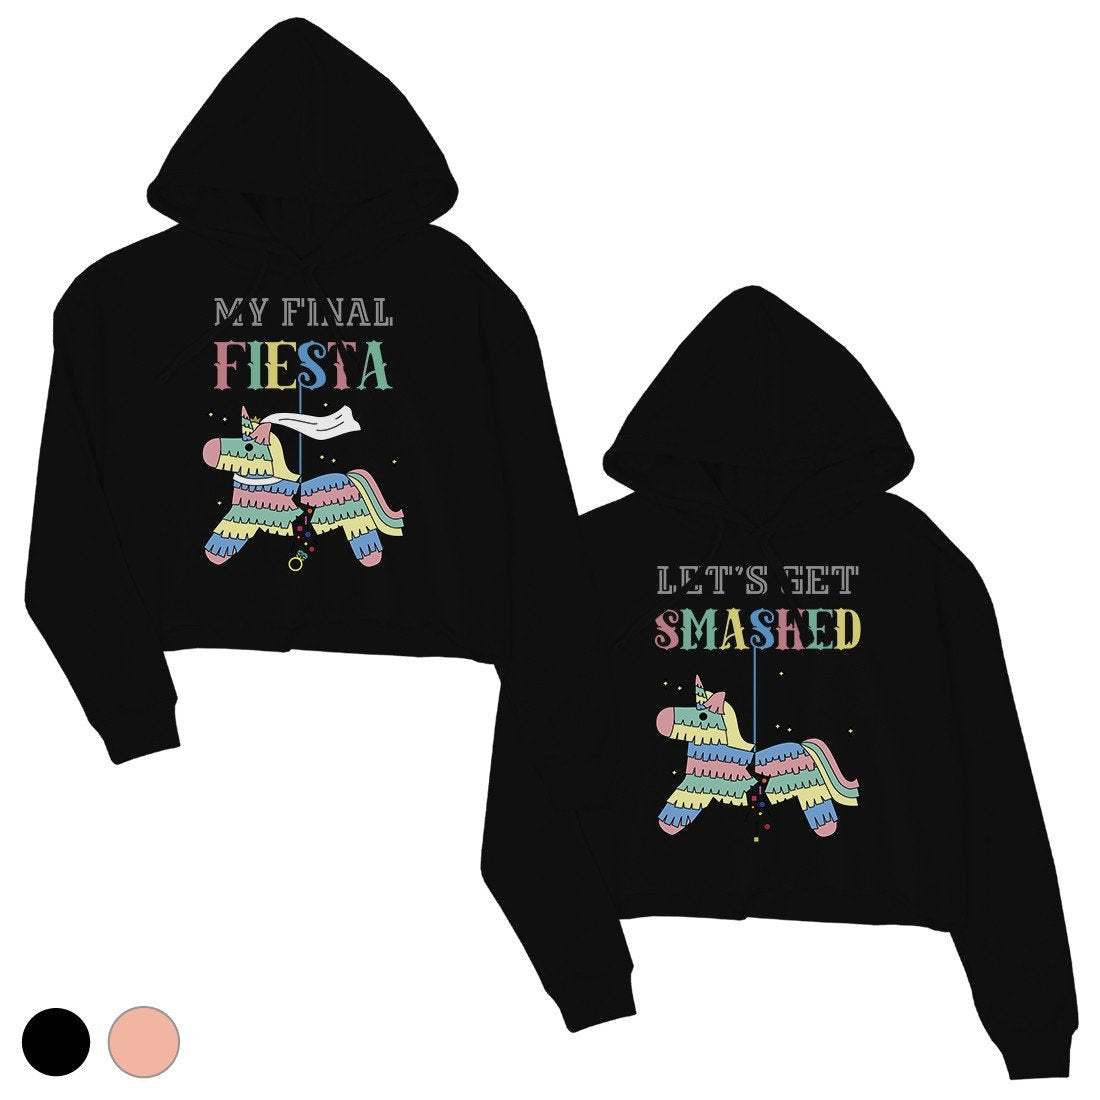 Final Fiesta Smashed Pinata BFF Matching Sweatshirts Gift Witty Fun